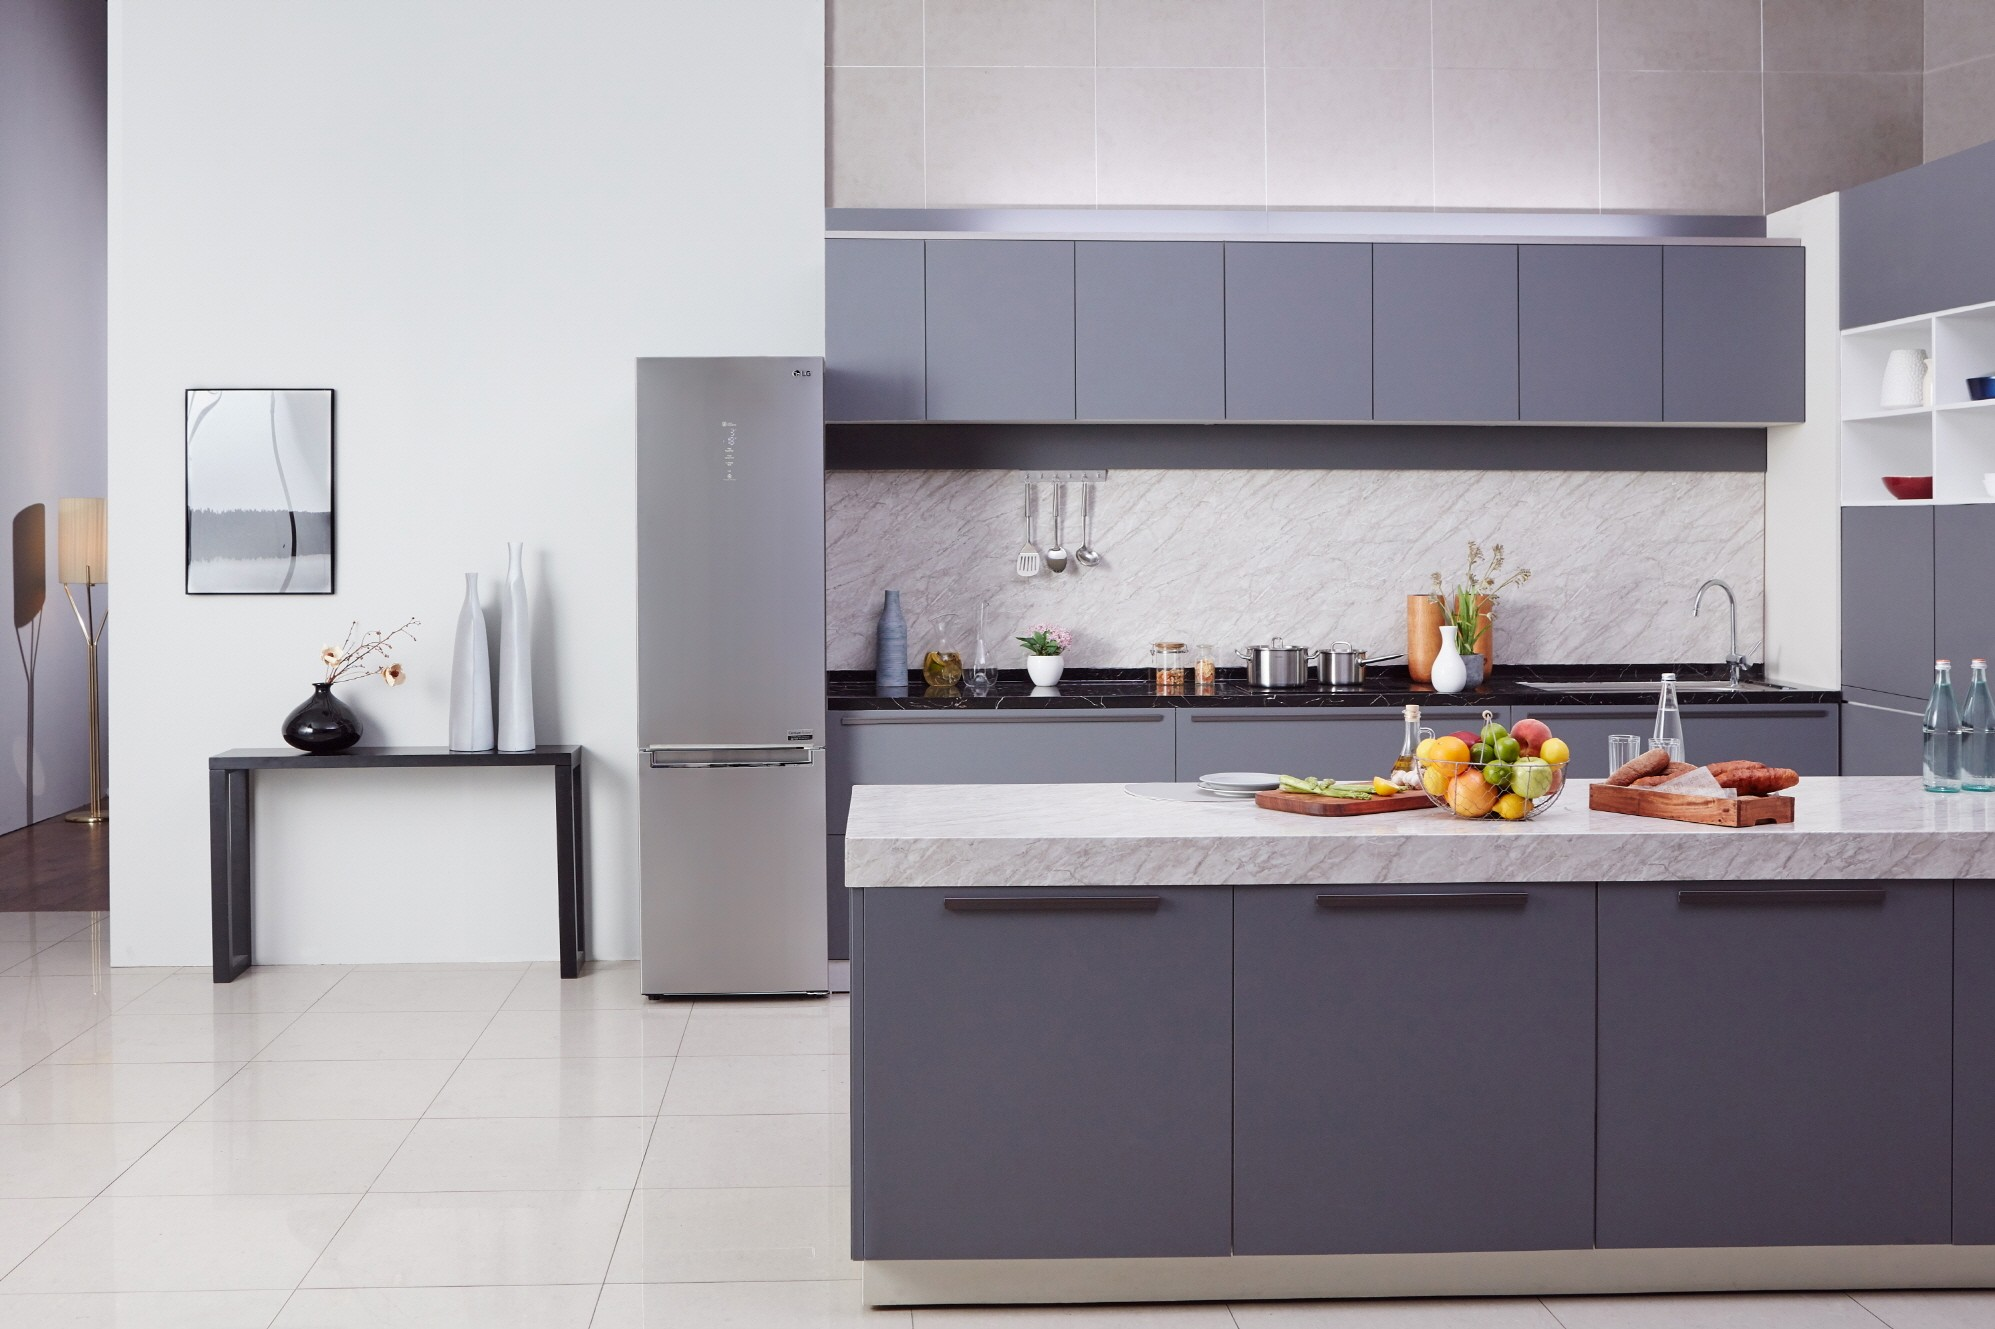 Kitchen with LG Centum System™ bottom-freezer refrigerator in the background